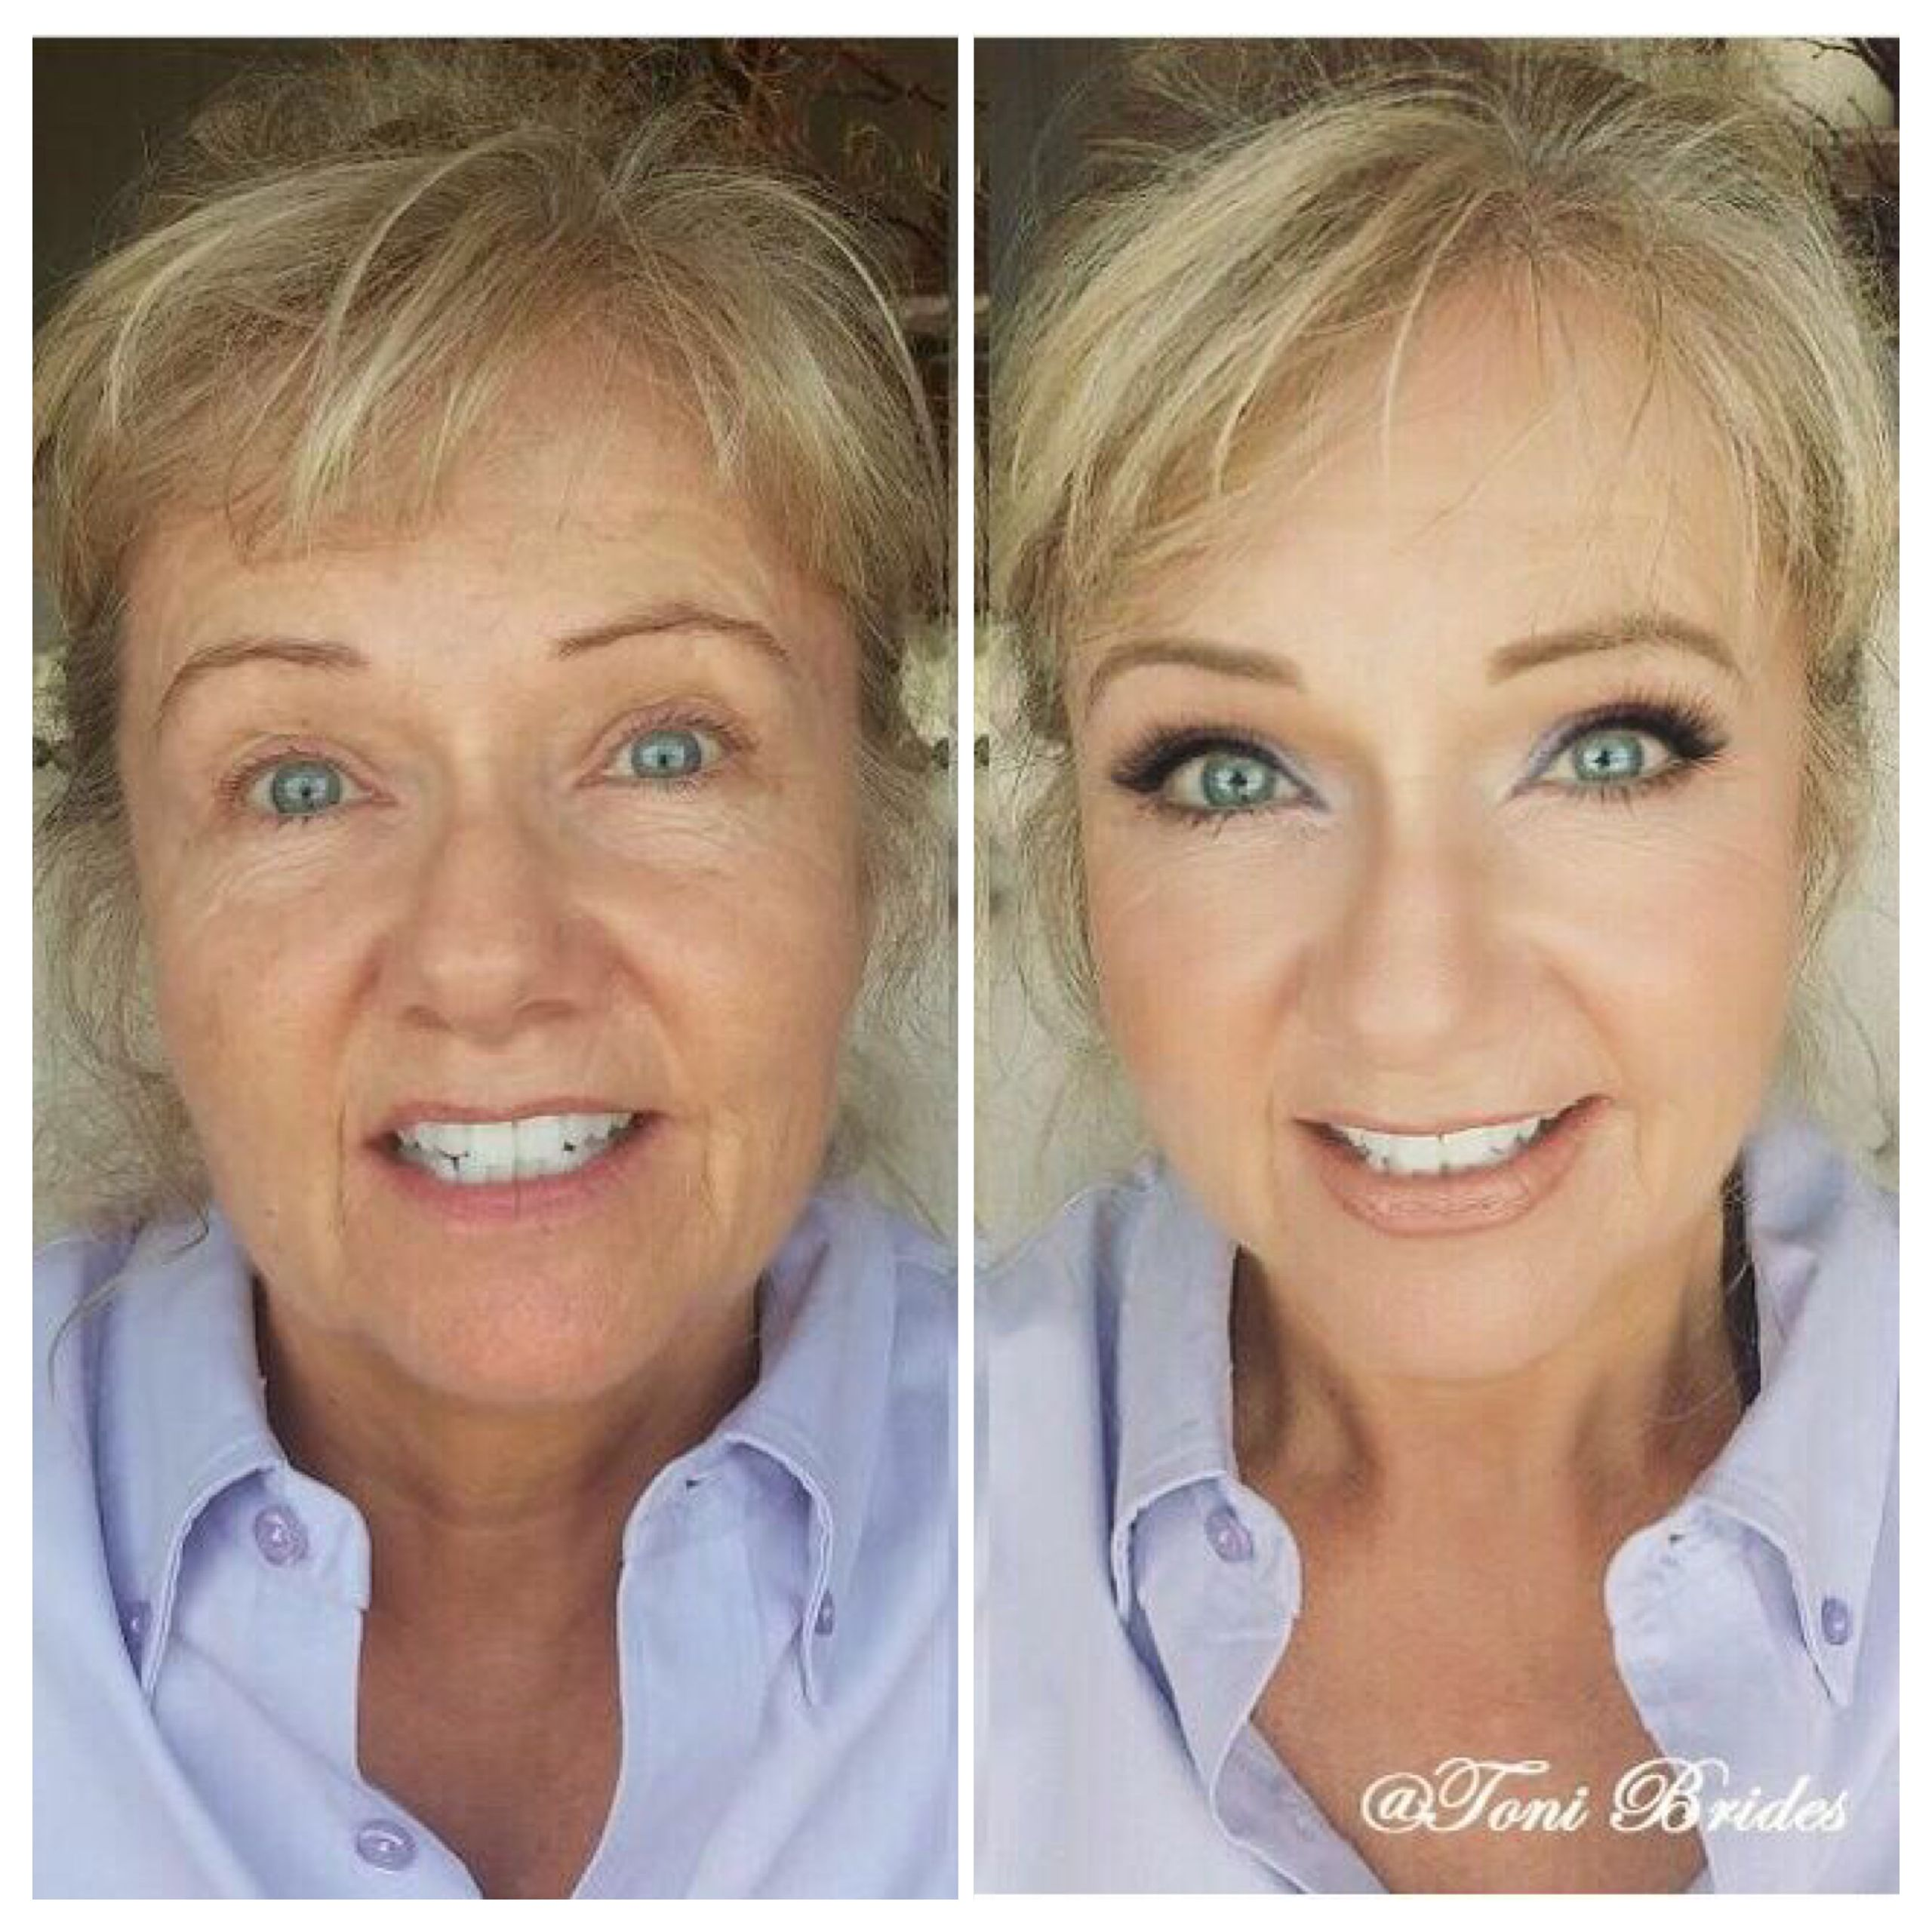 Wonderful Before and After Shot Showing the Magic of